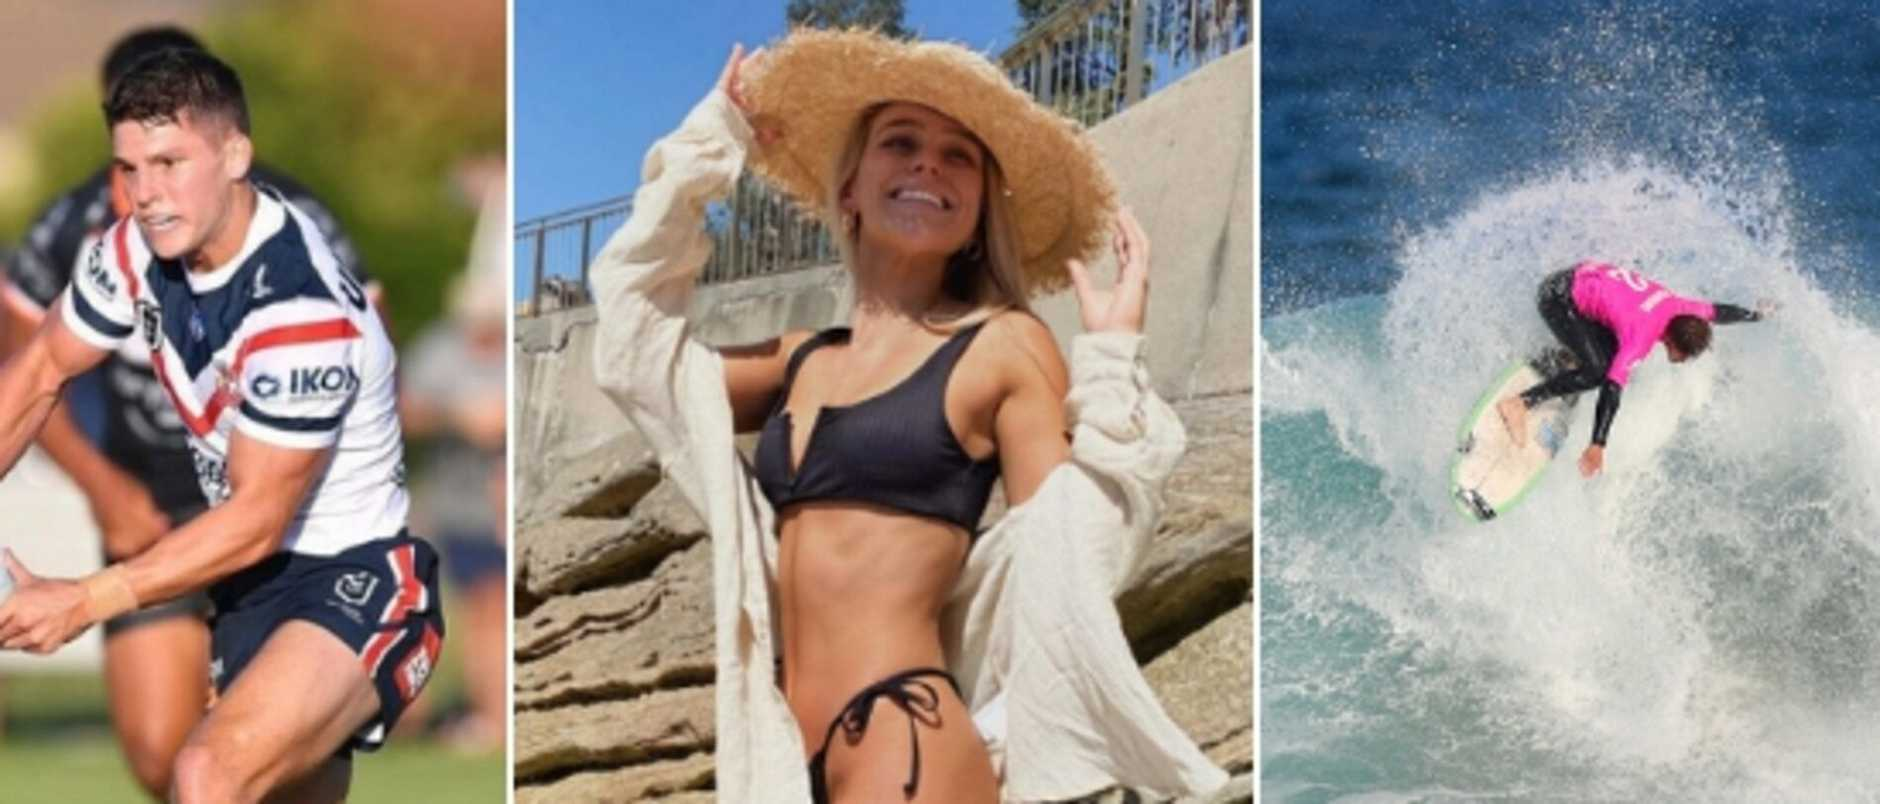 A Bra Boy has avoided jail time after assaulting an insta-famous assistant police commissioner's daughter and her international rugby league playing boyfriend.